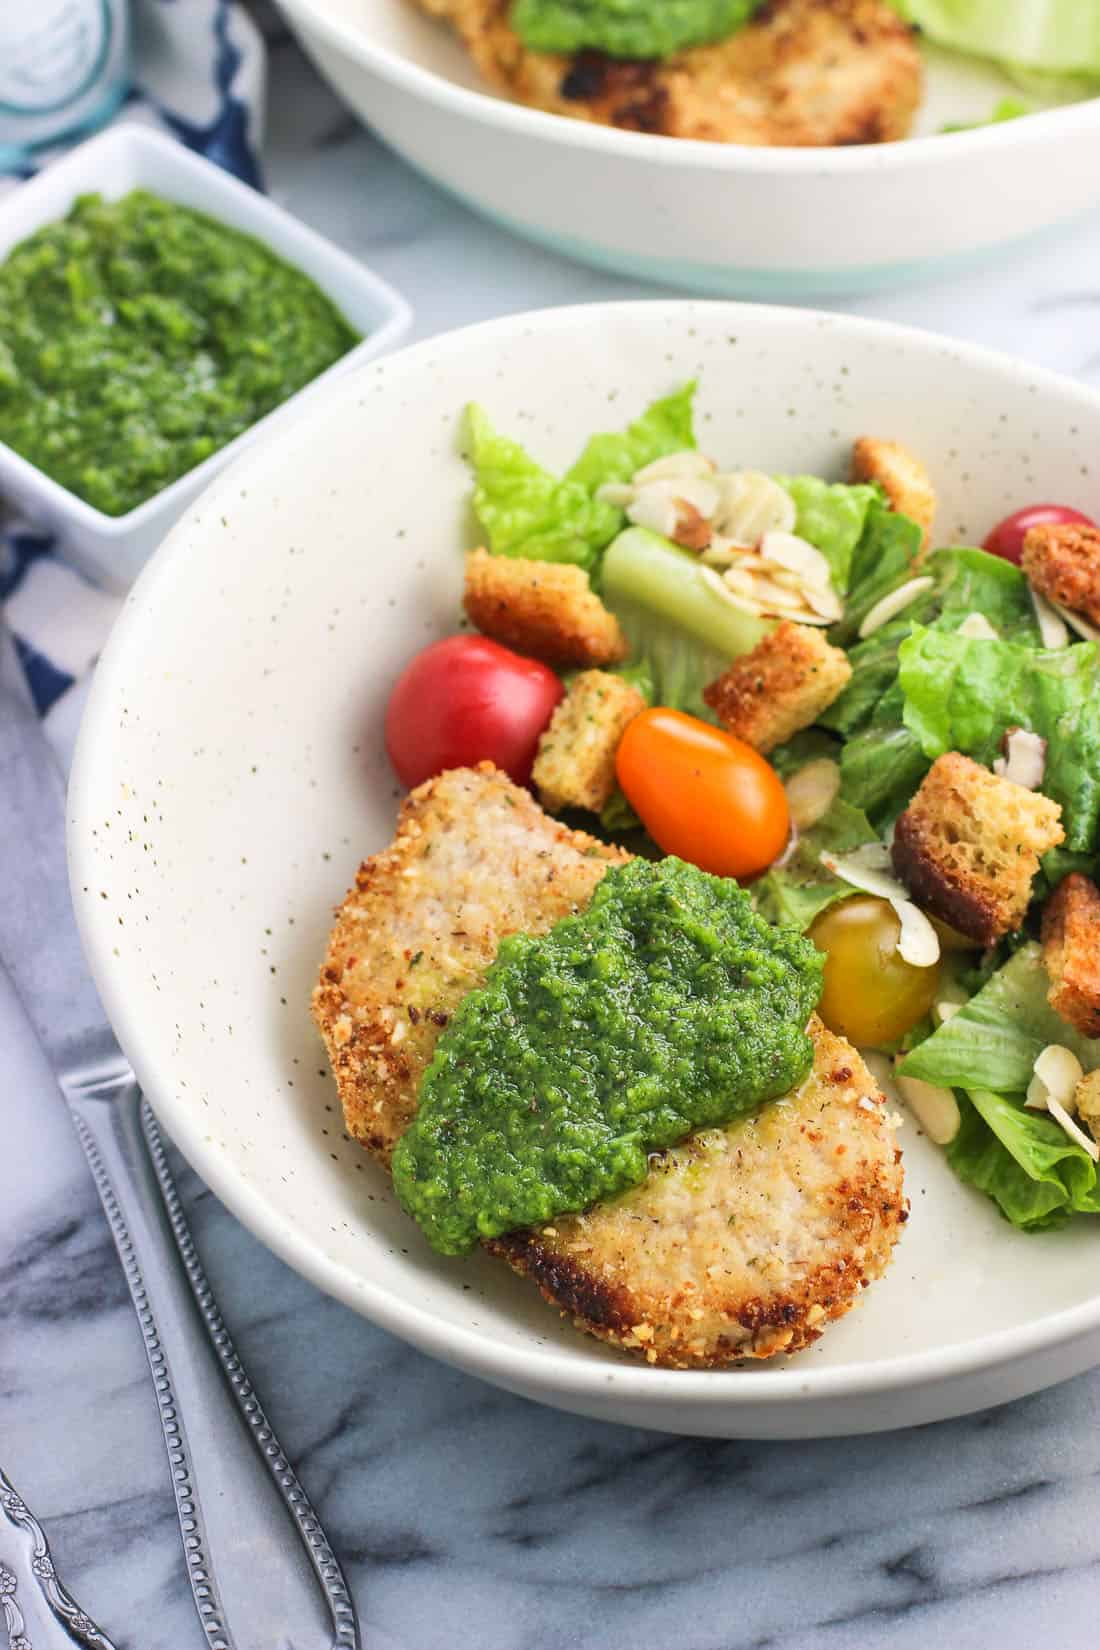 Parmesan almond crusted pork chops are baked and topped with parsley pesto for a relatively quick and easy main dish recipe.